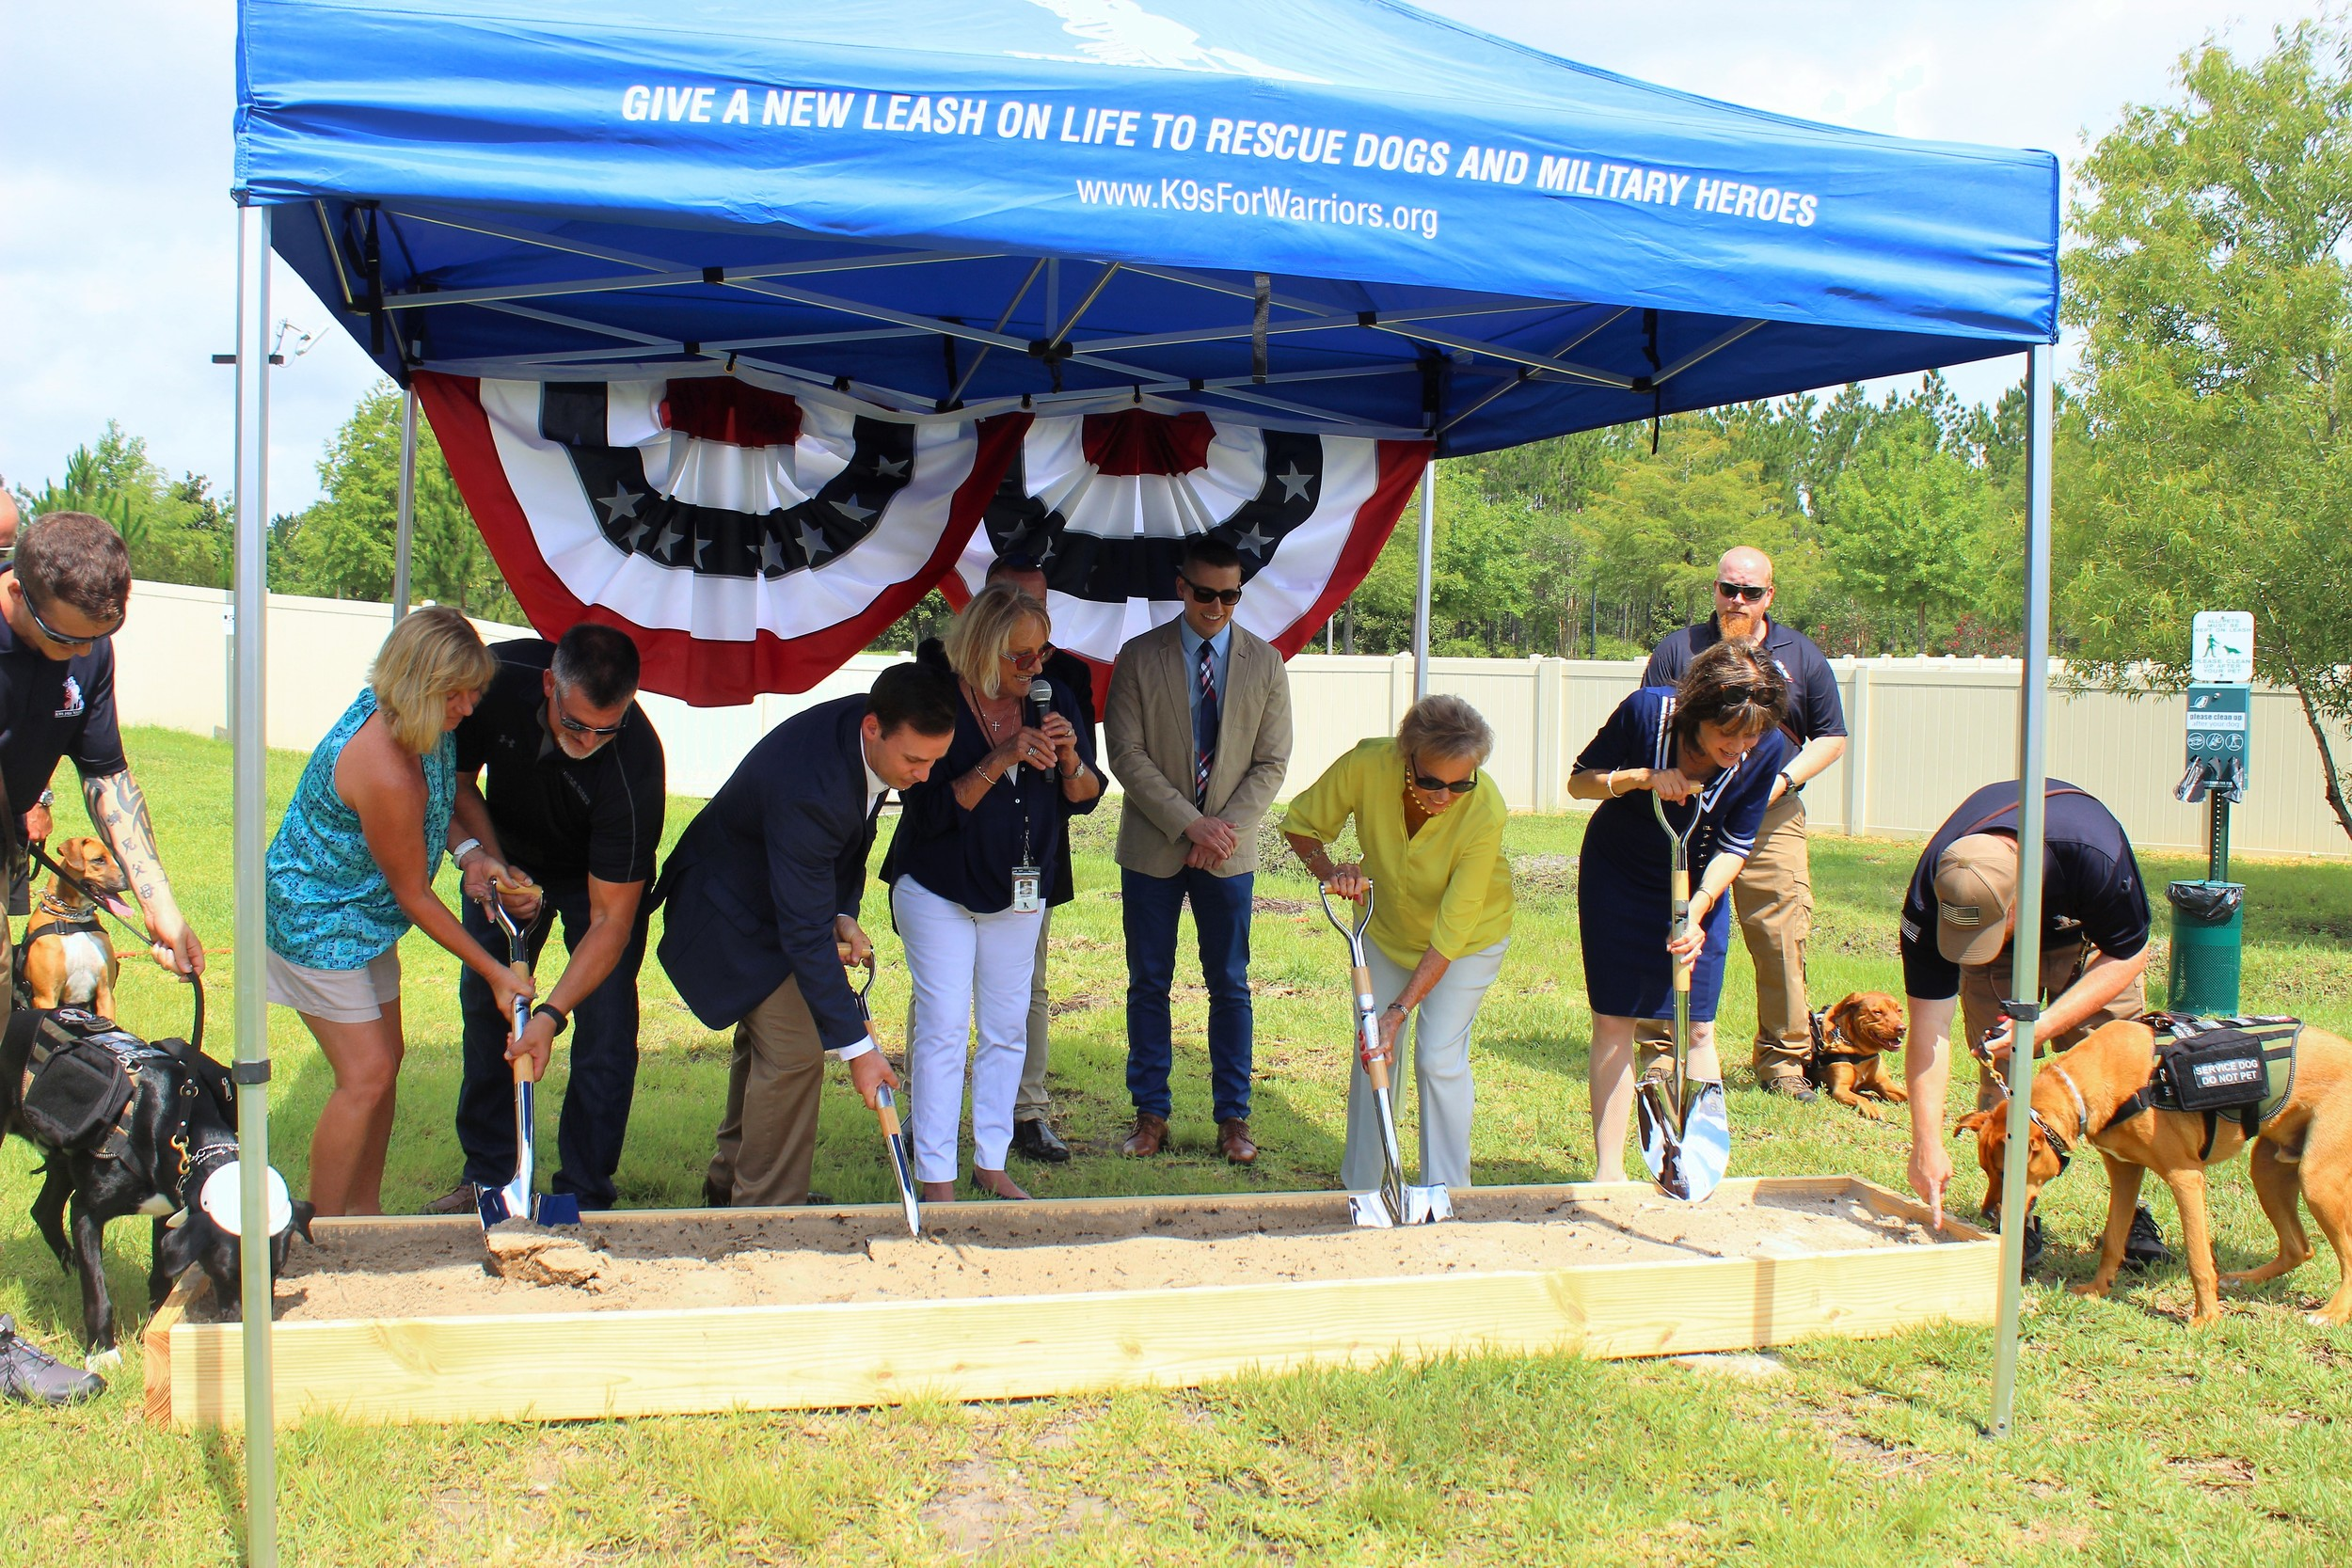 K9s for Warriors holds a ground-breaking ceremony for its new training facility.